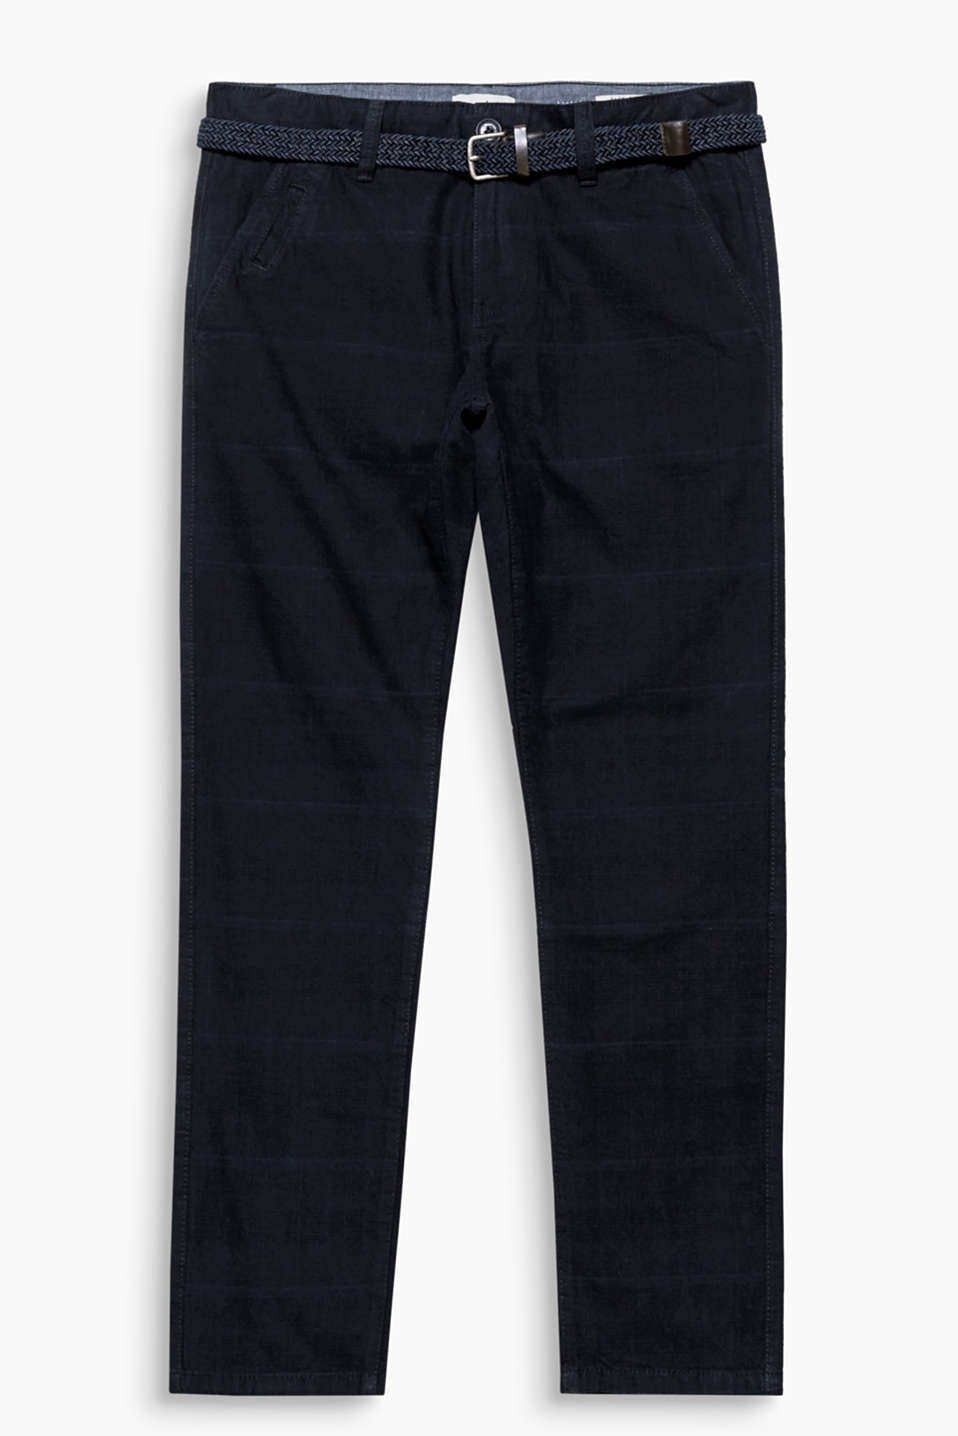 A casual fashion basic! These chinos impress with a fine check pattern and narrow woven belt.